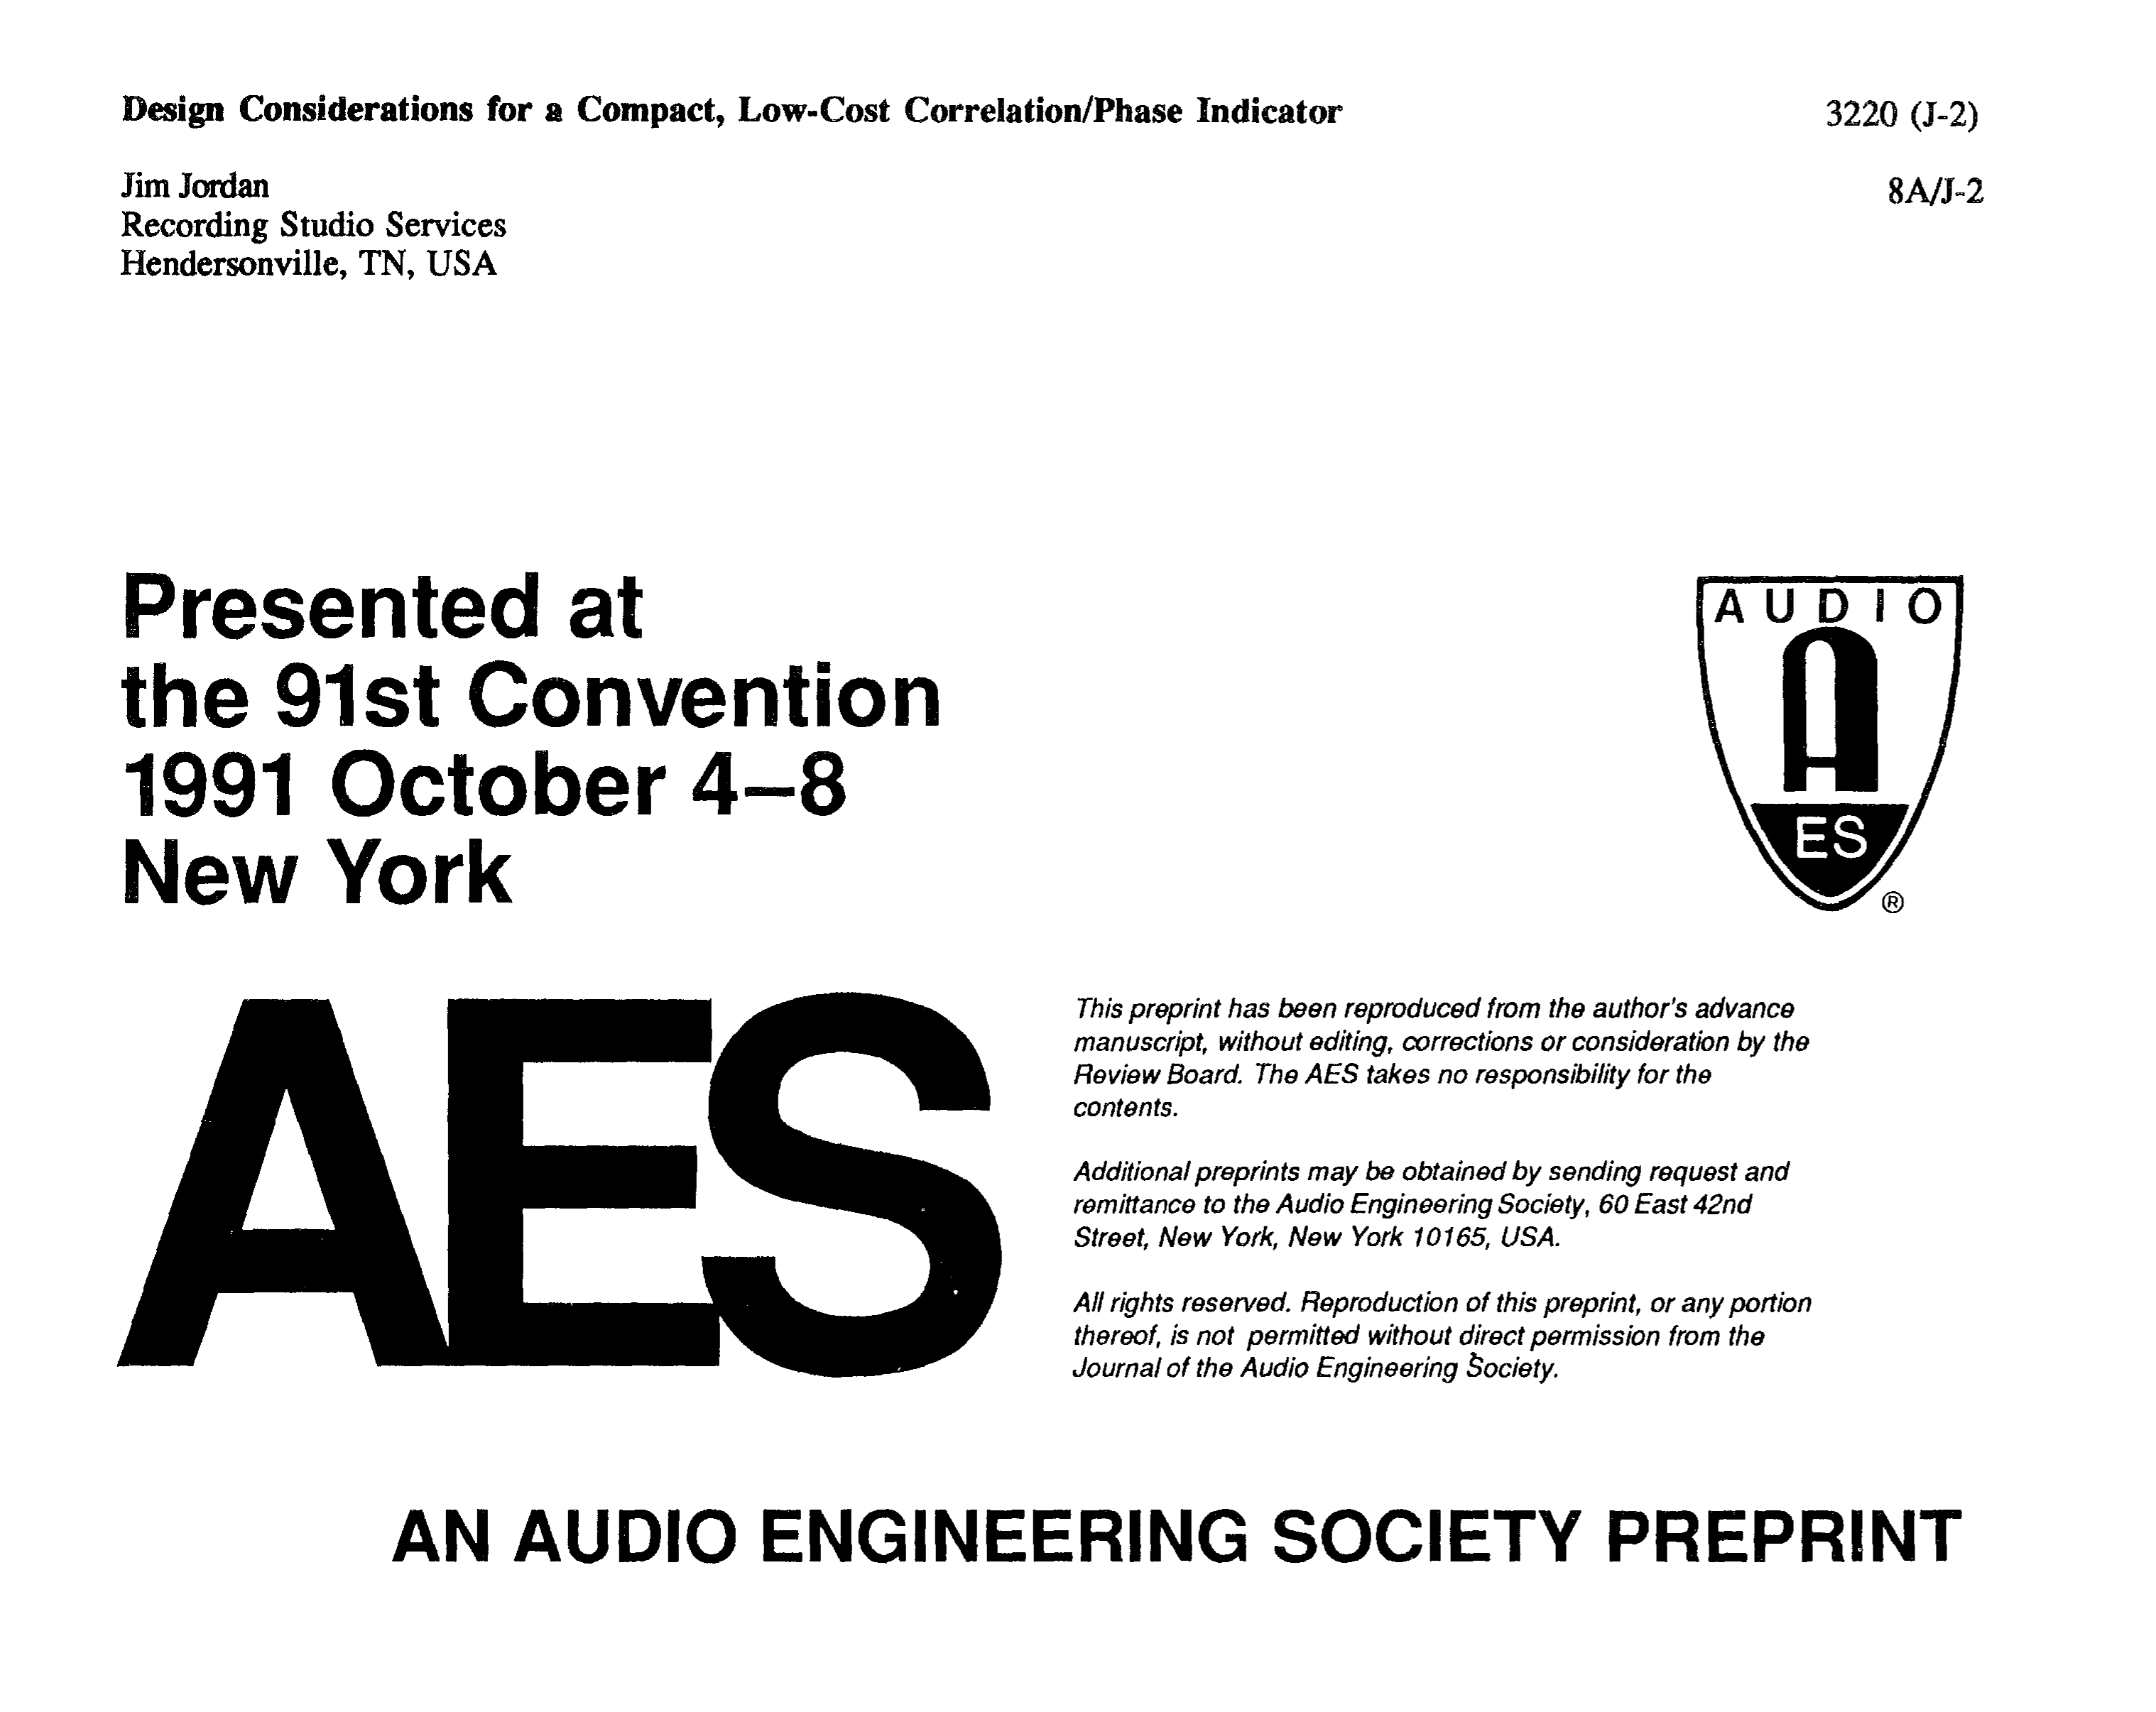 Aes E Library Design Considerations For A Compact Low Cost Led Expanded Scale Voltmeter Circuitcircuit Diagram World Correlation Phase Indicator